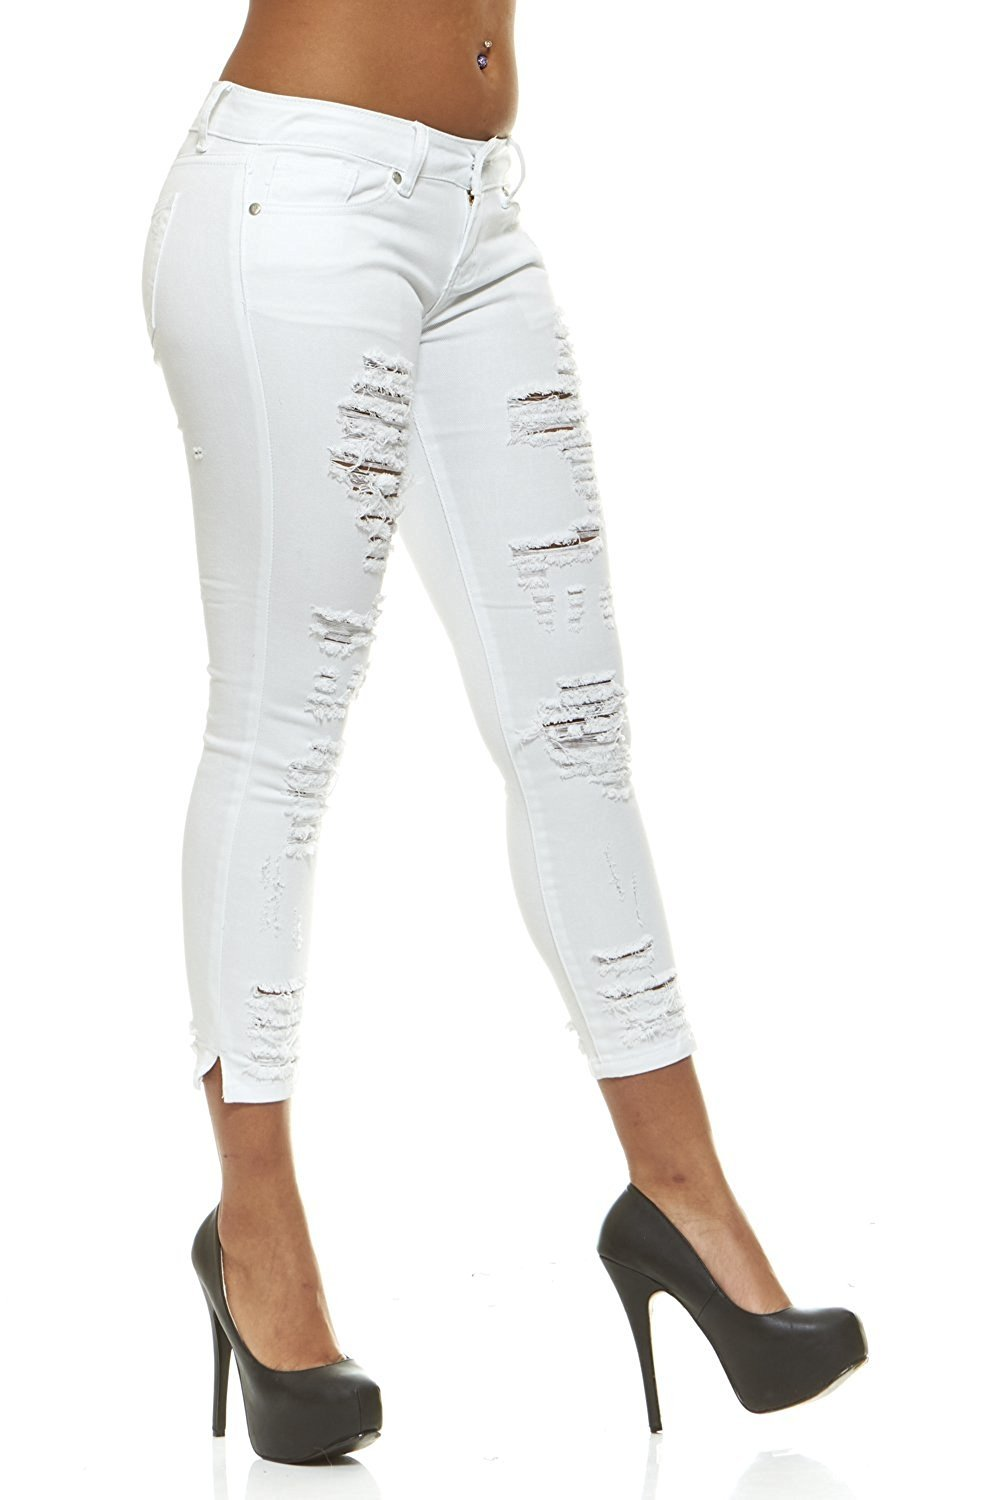 Ripped Slits Distressed Ankle Skinny Slim Fit Stretch Jeans For Women Junior or Plus Sizes 4 Color Options